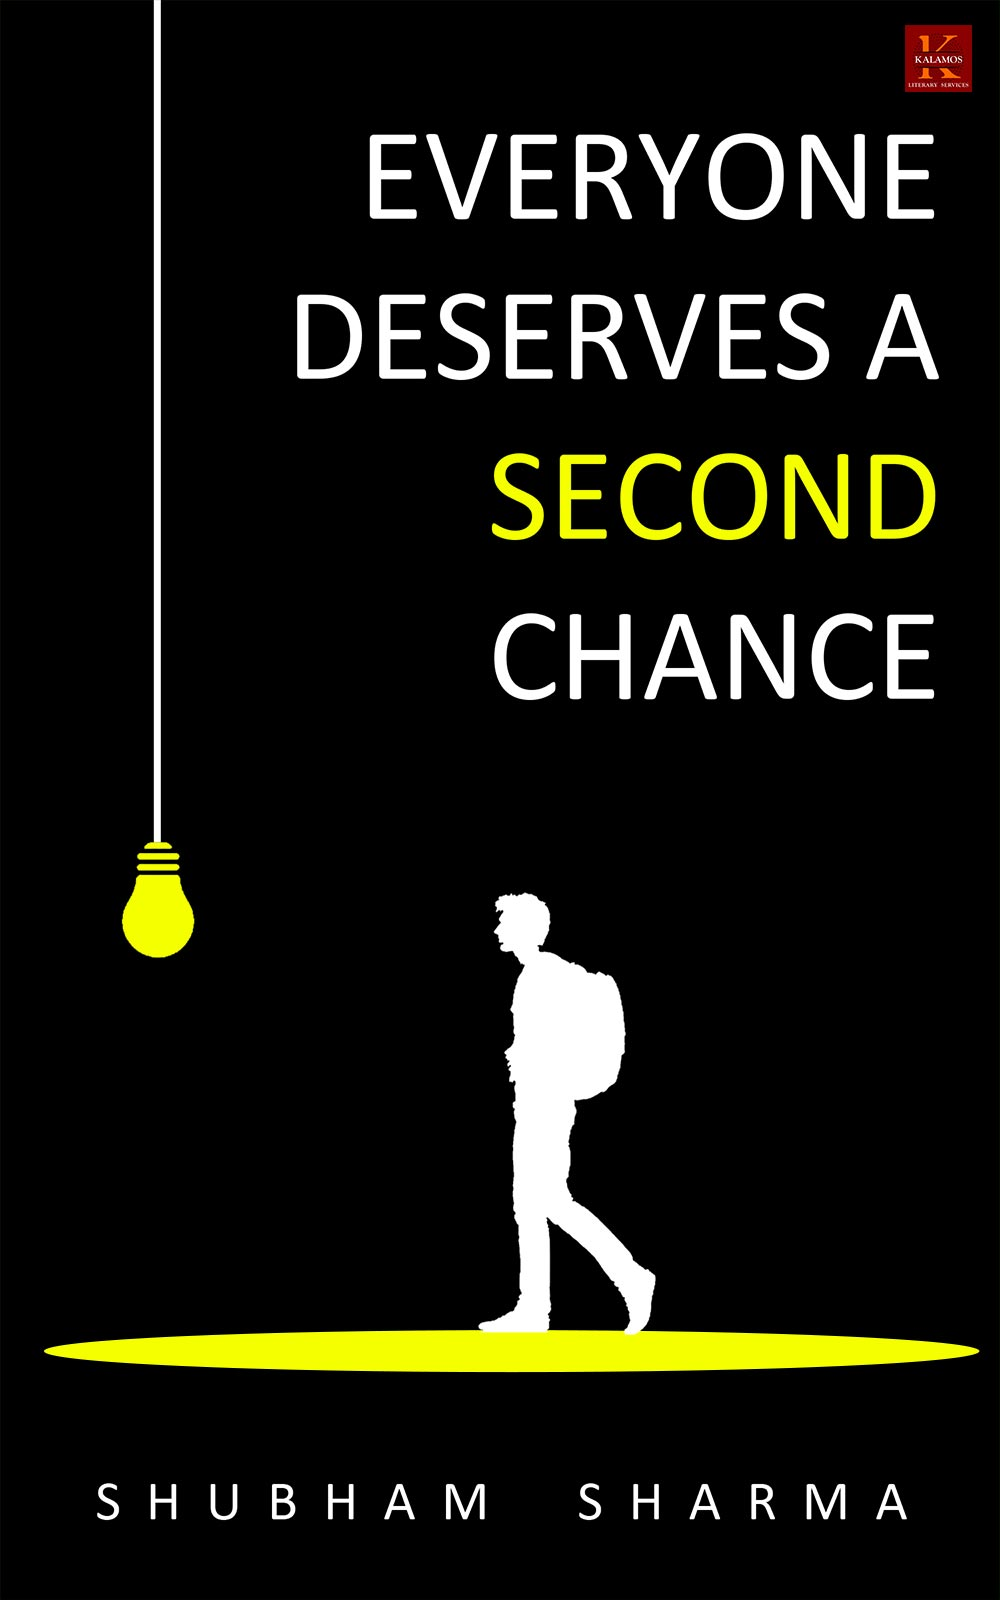 Everyone Deserves a Second Chance By Shubham Sharma